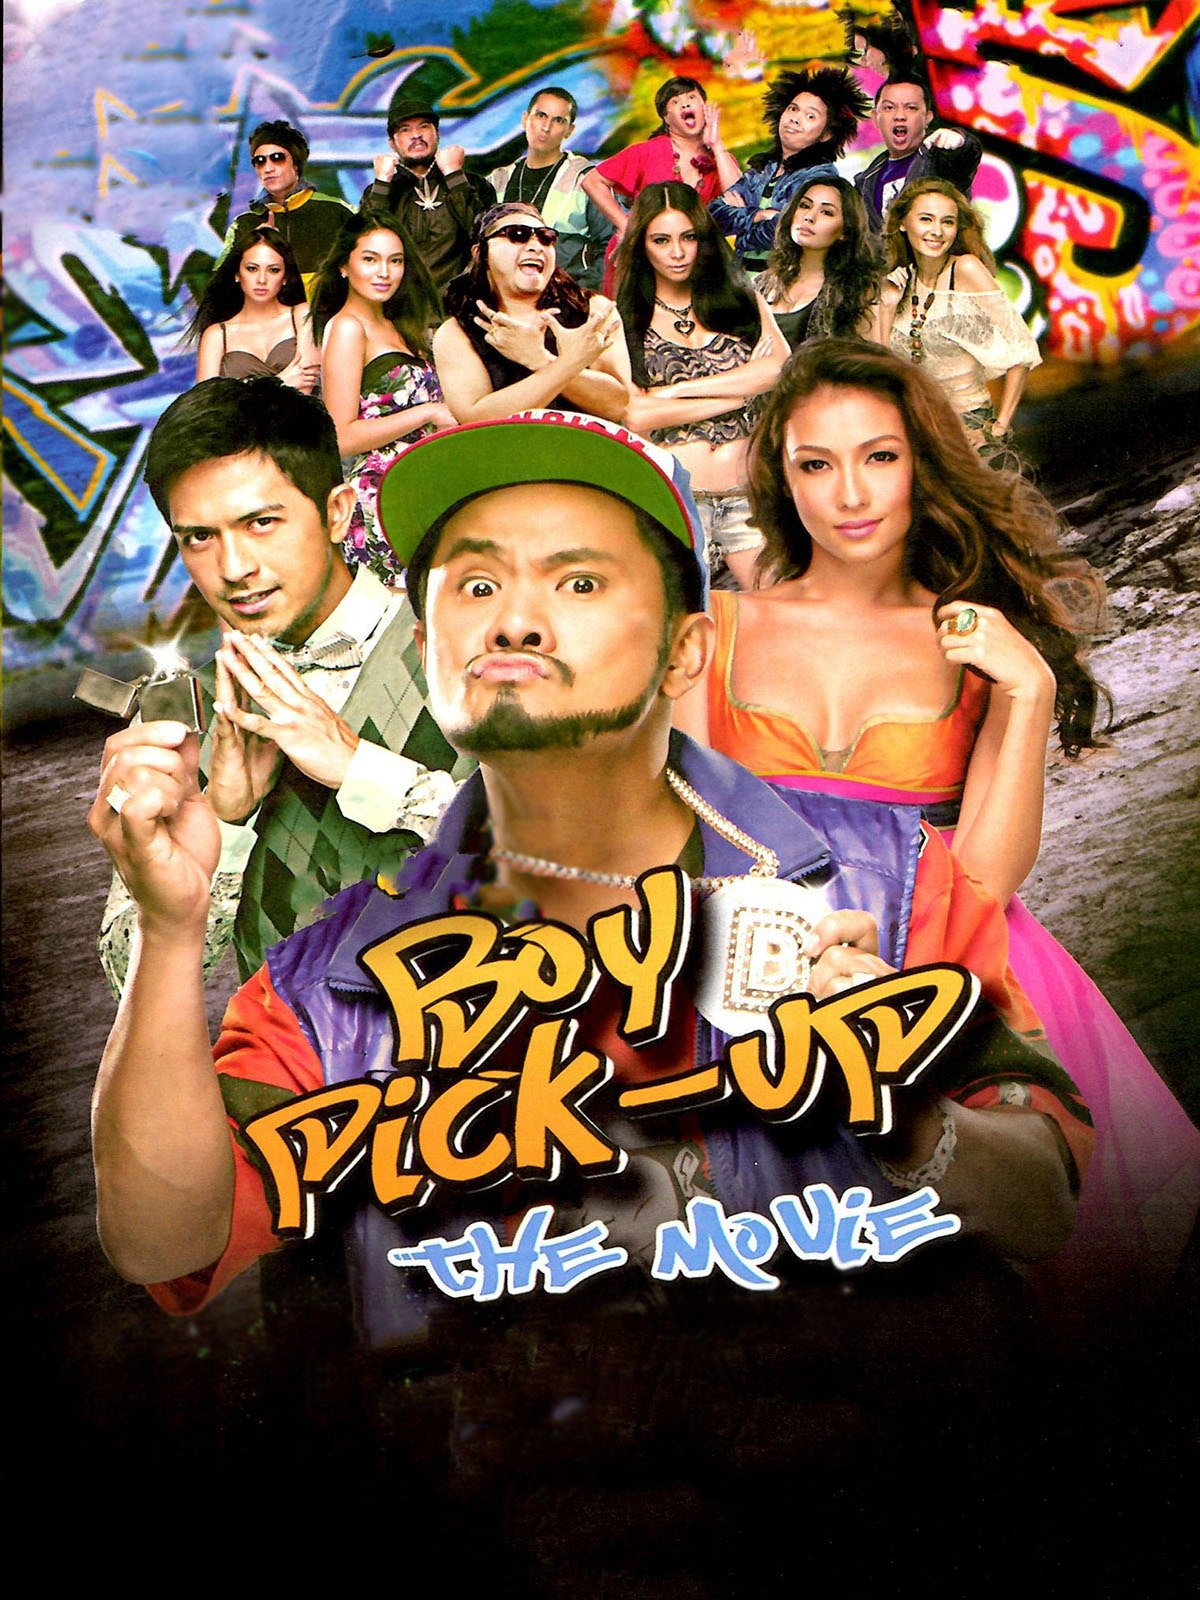 Boy Pick-Up - The Movie